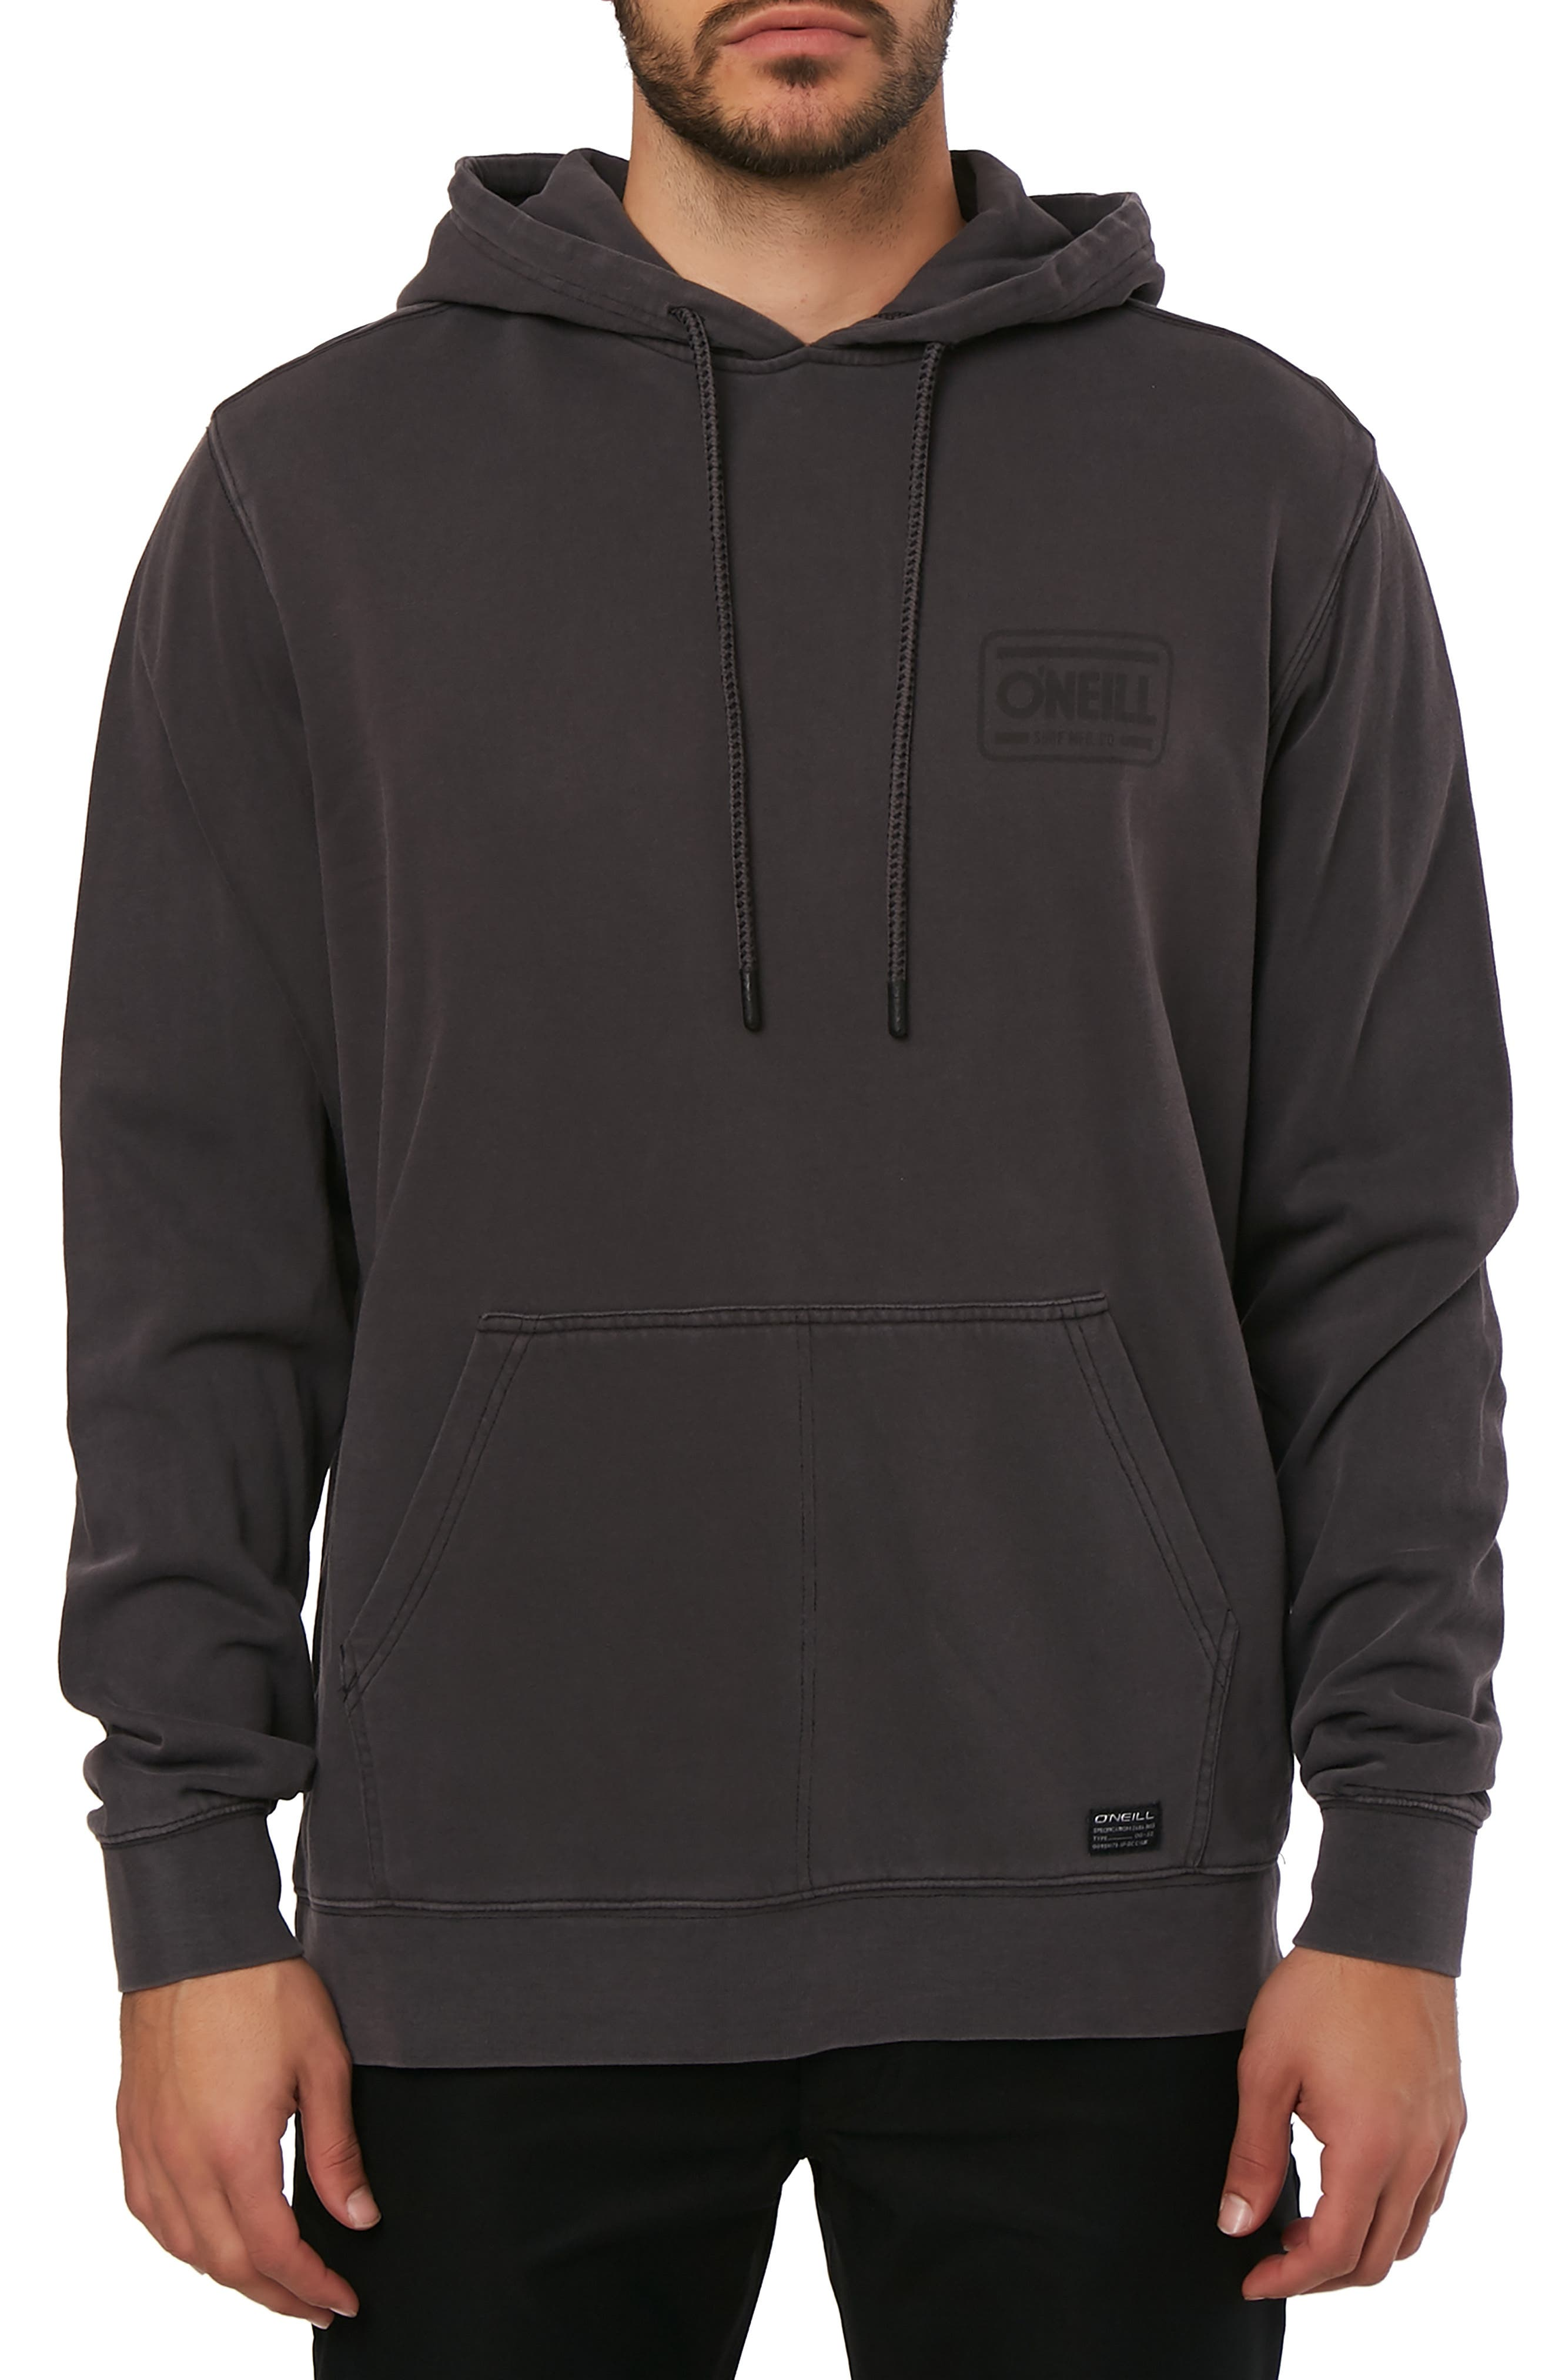 Oceans Hooded Sweatshirt,                         Main,                         color, 001